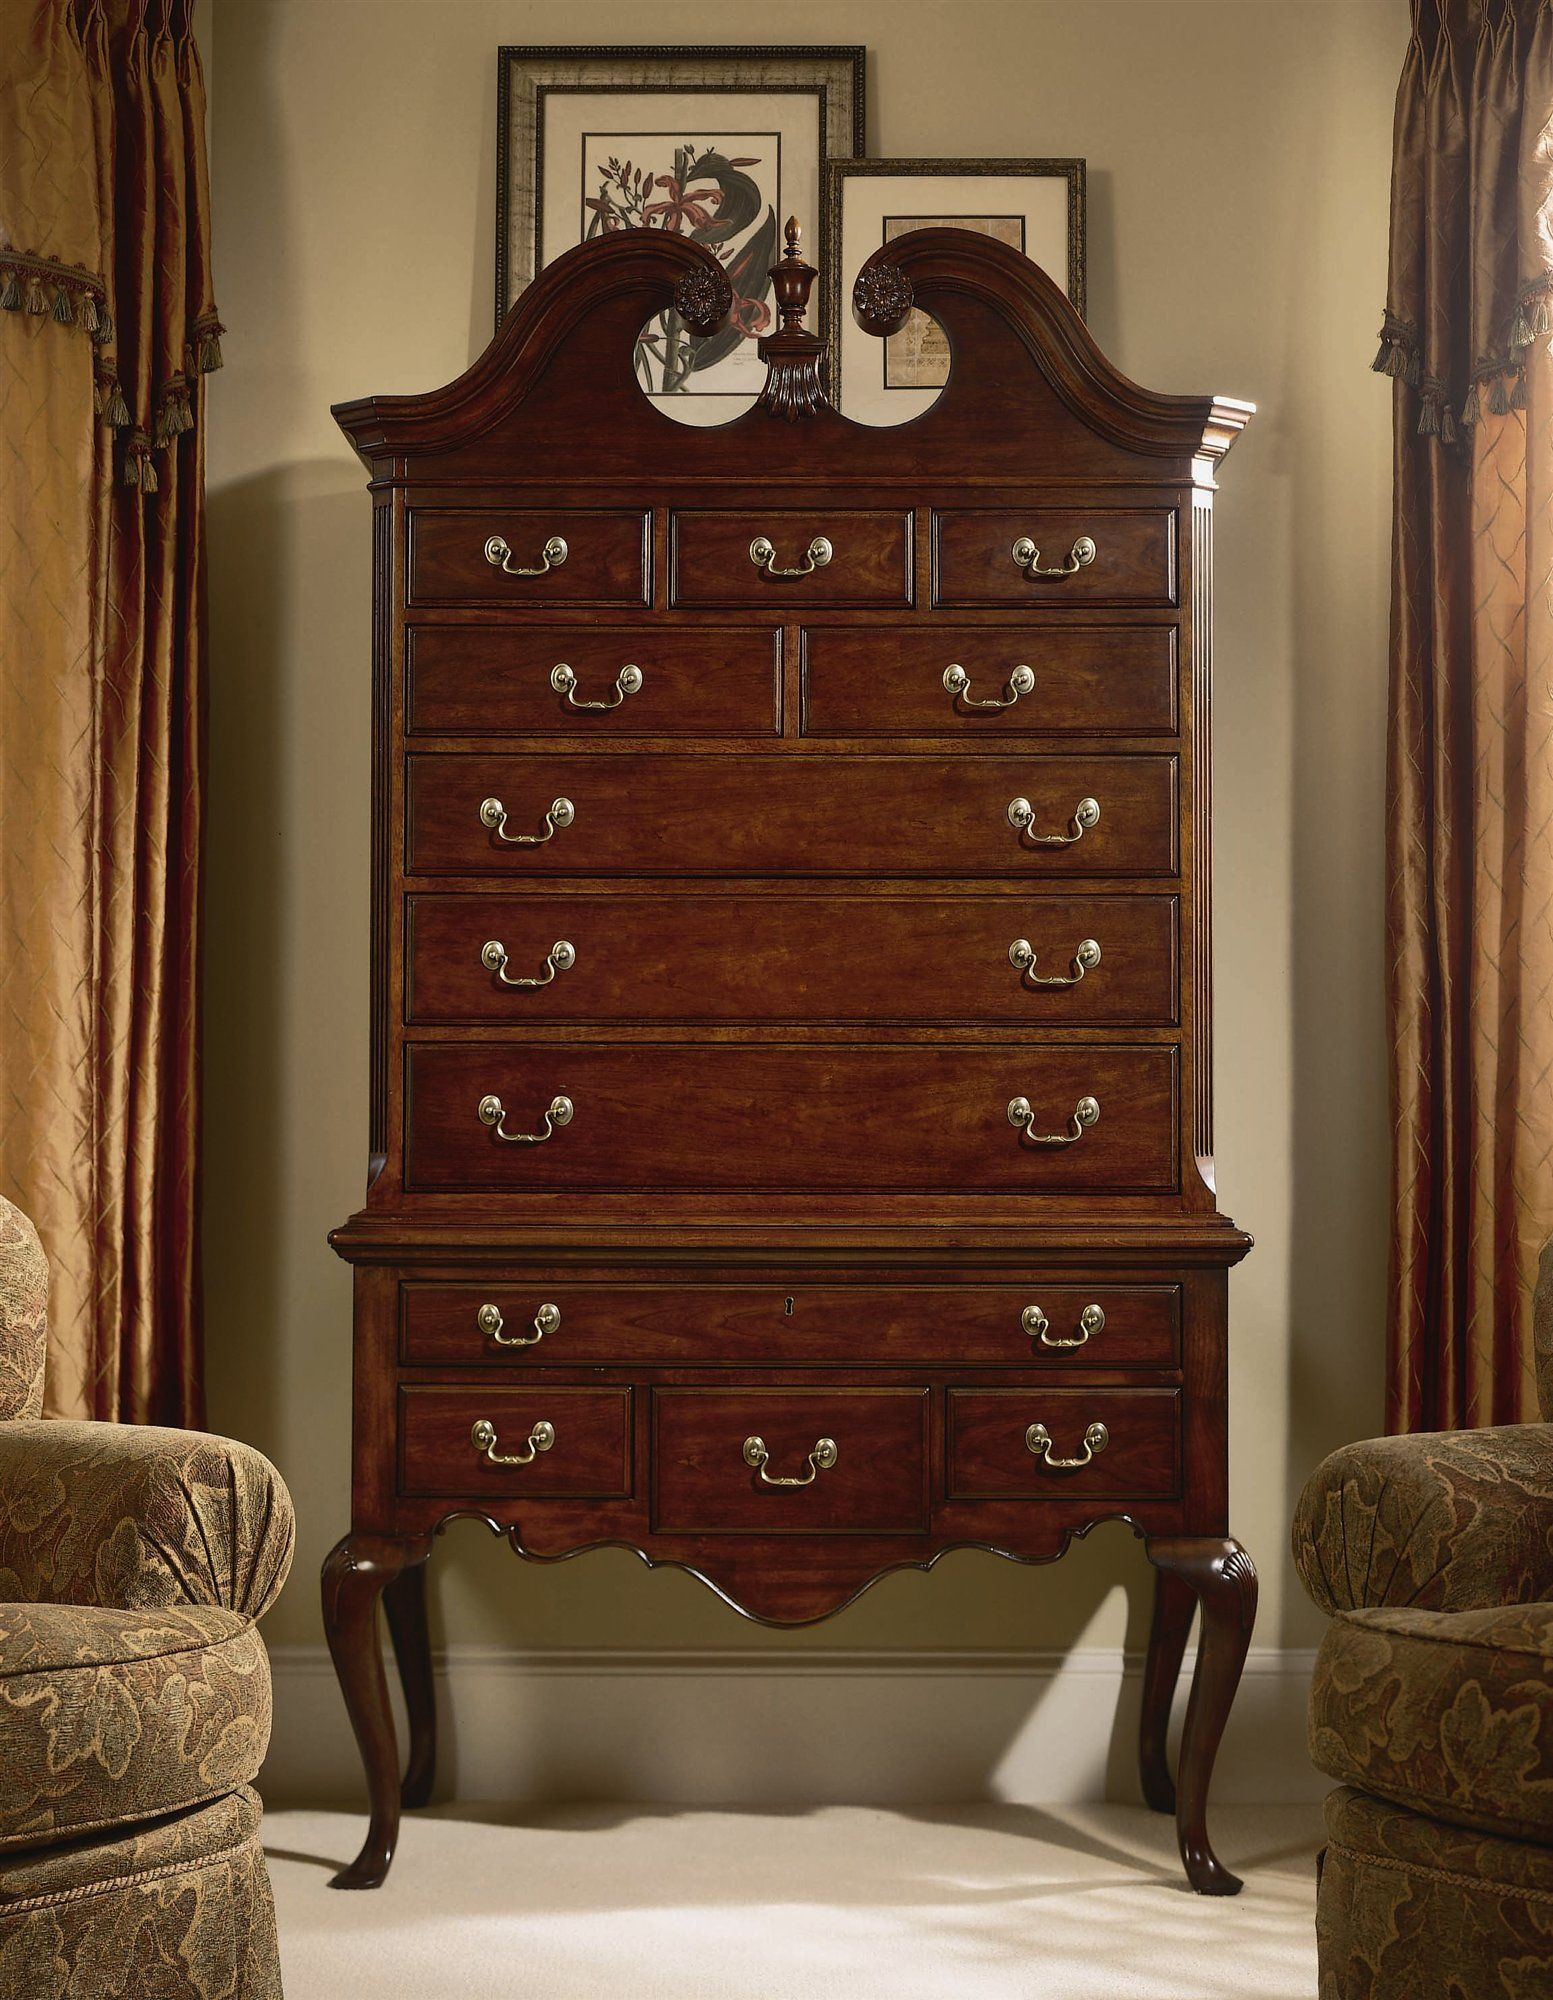 of dillingham an product orange esprit with highboy walnut mirror chest drawers attached tall